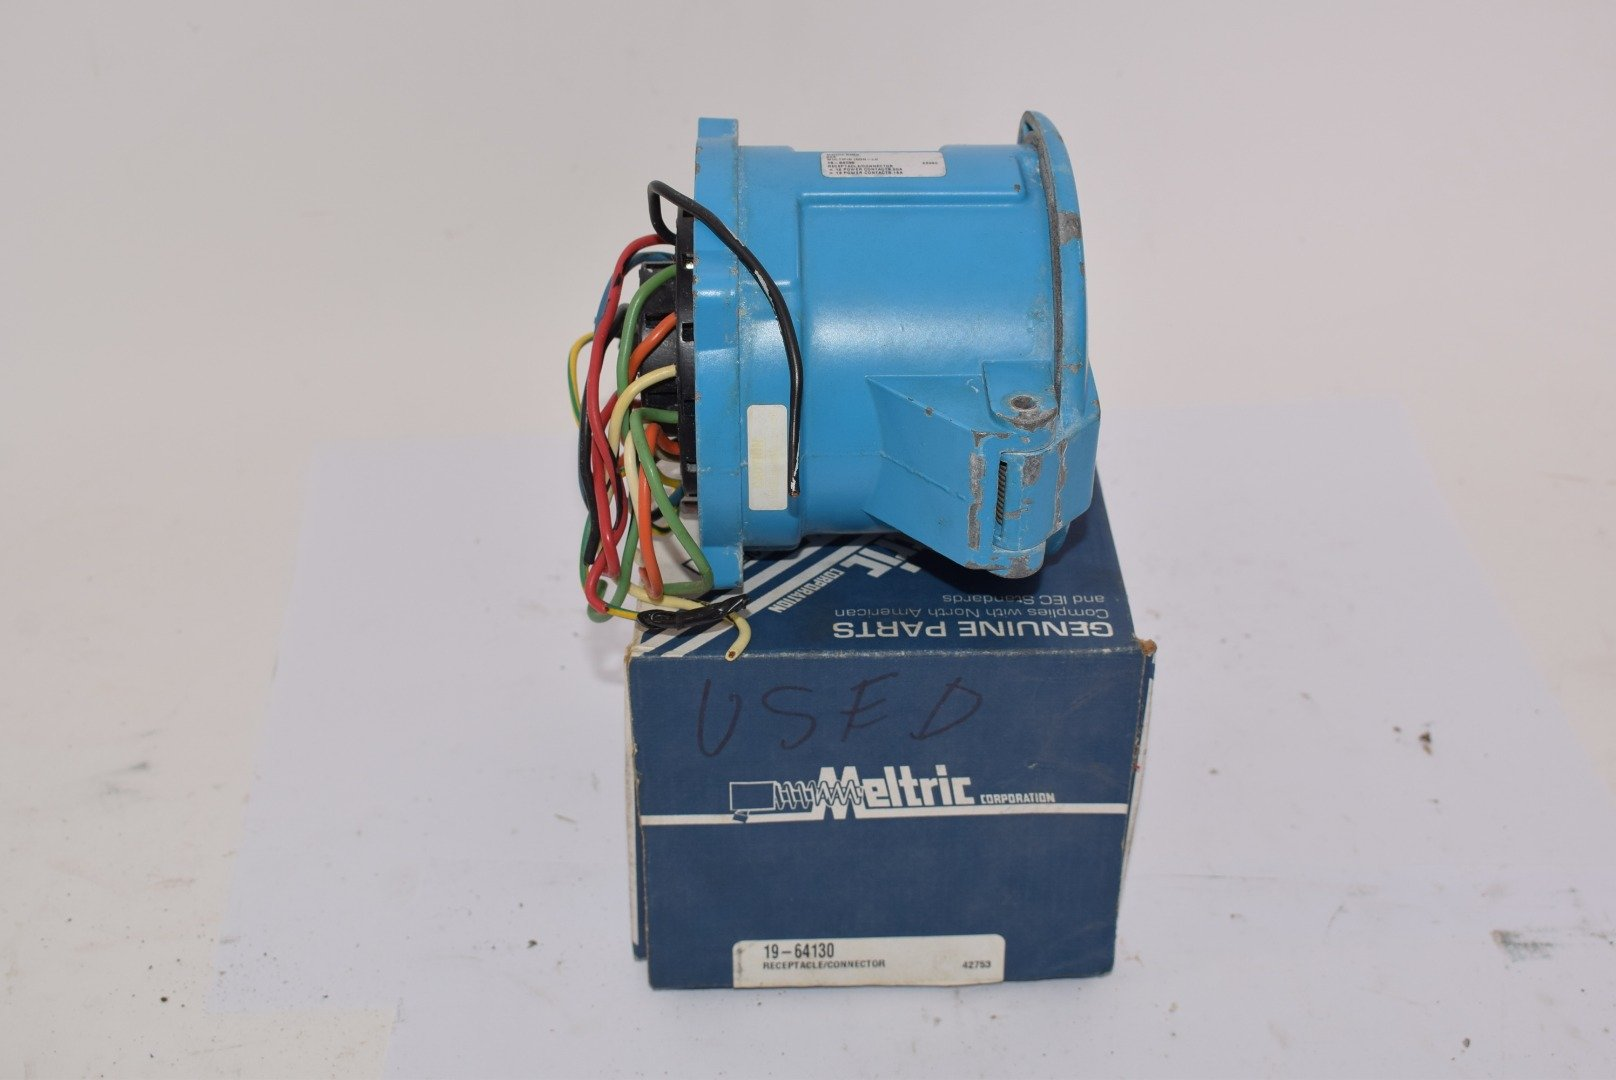 Meltric 19-64130 DN20 Receptacle Connector 20A 13P Multi Pin